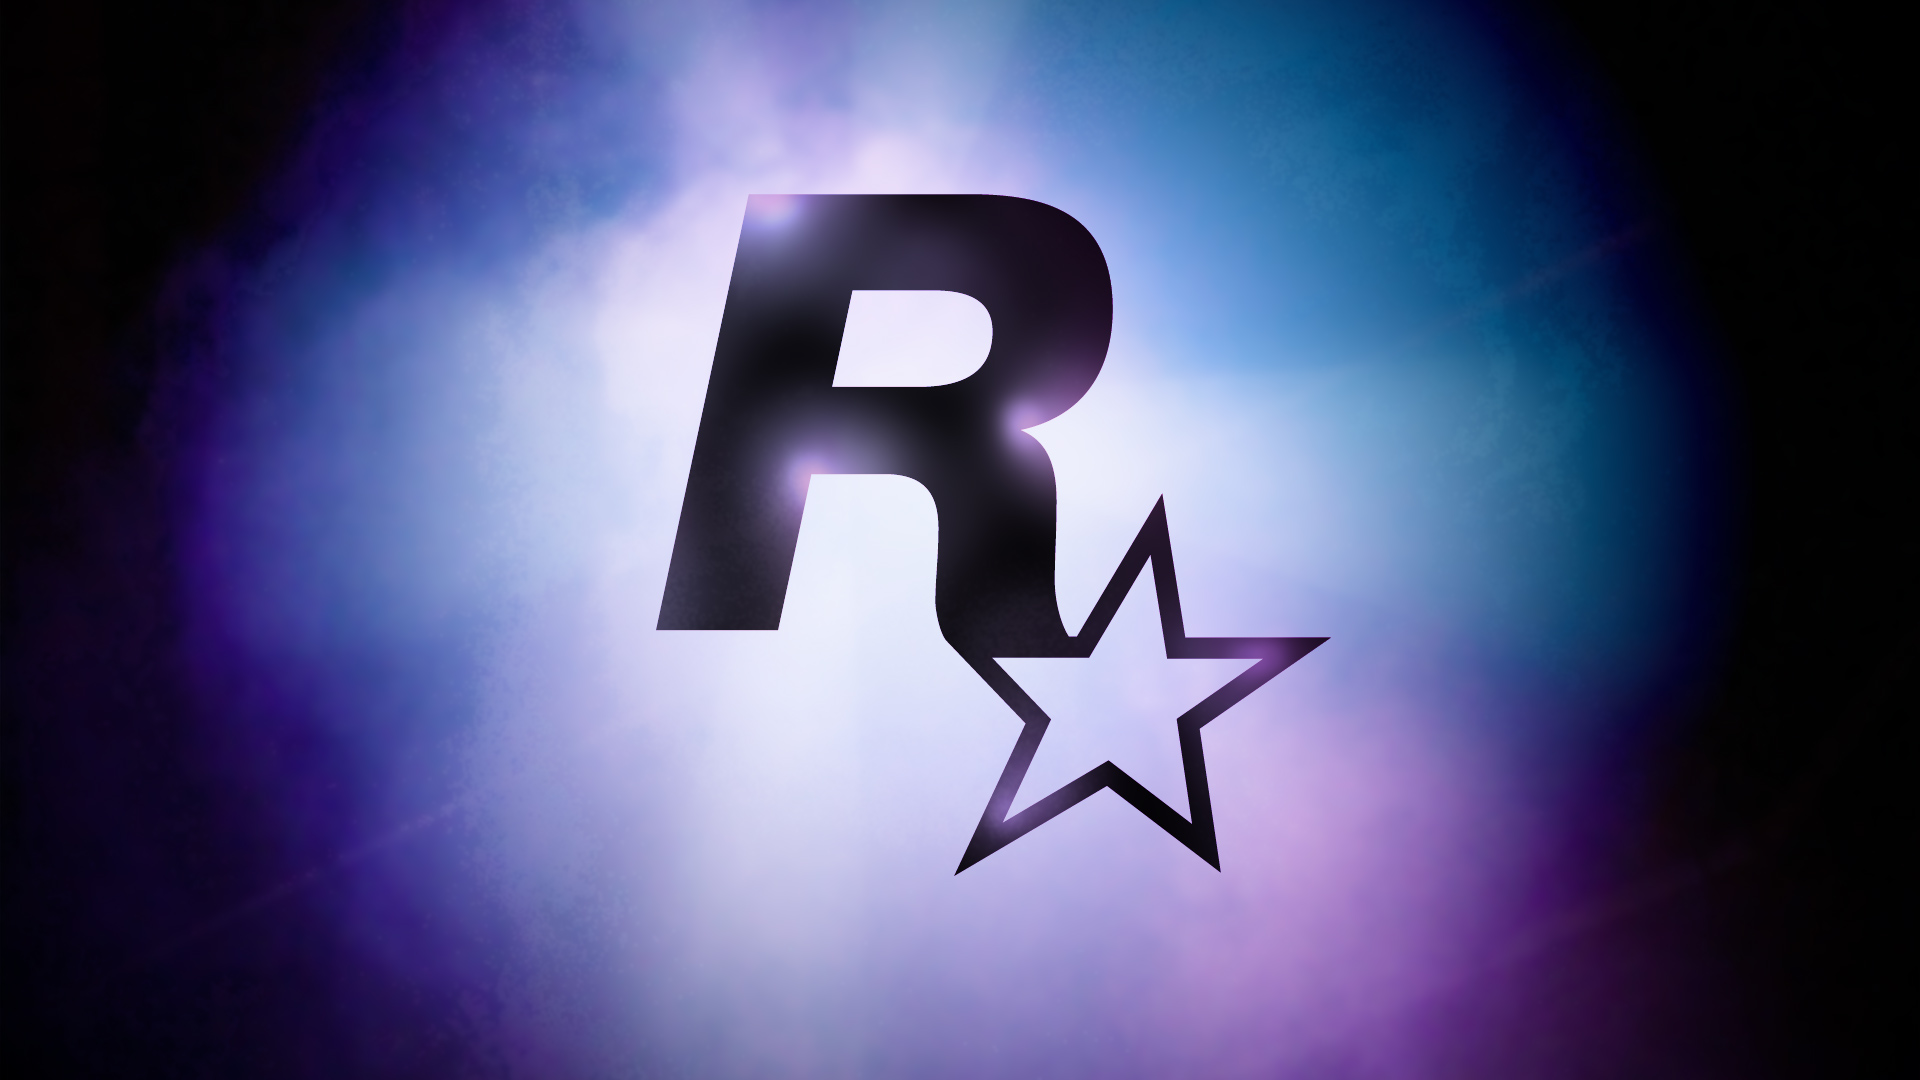 rockstar games logo hd wallpaper